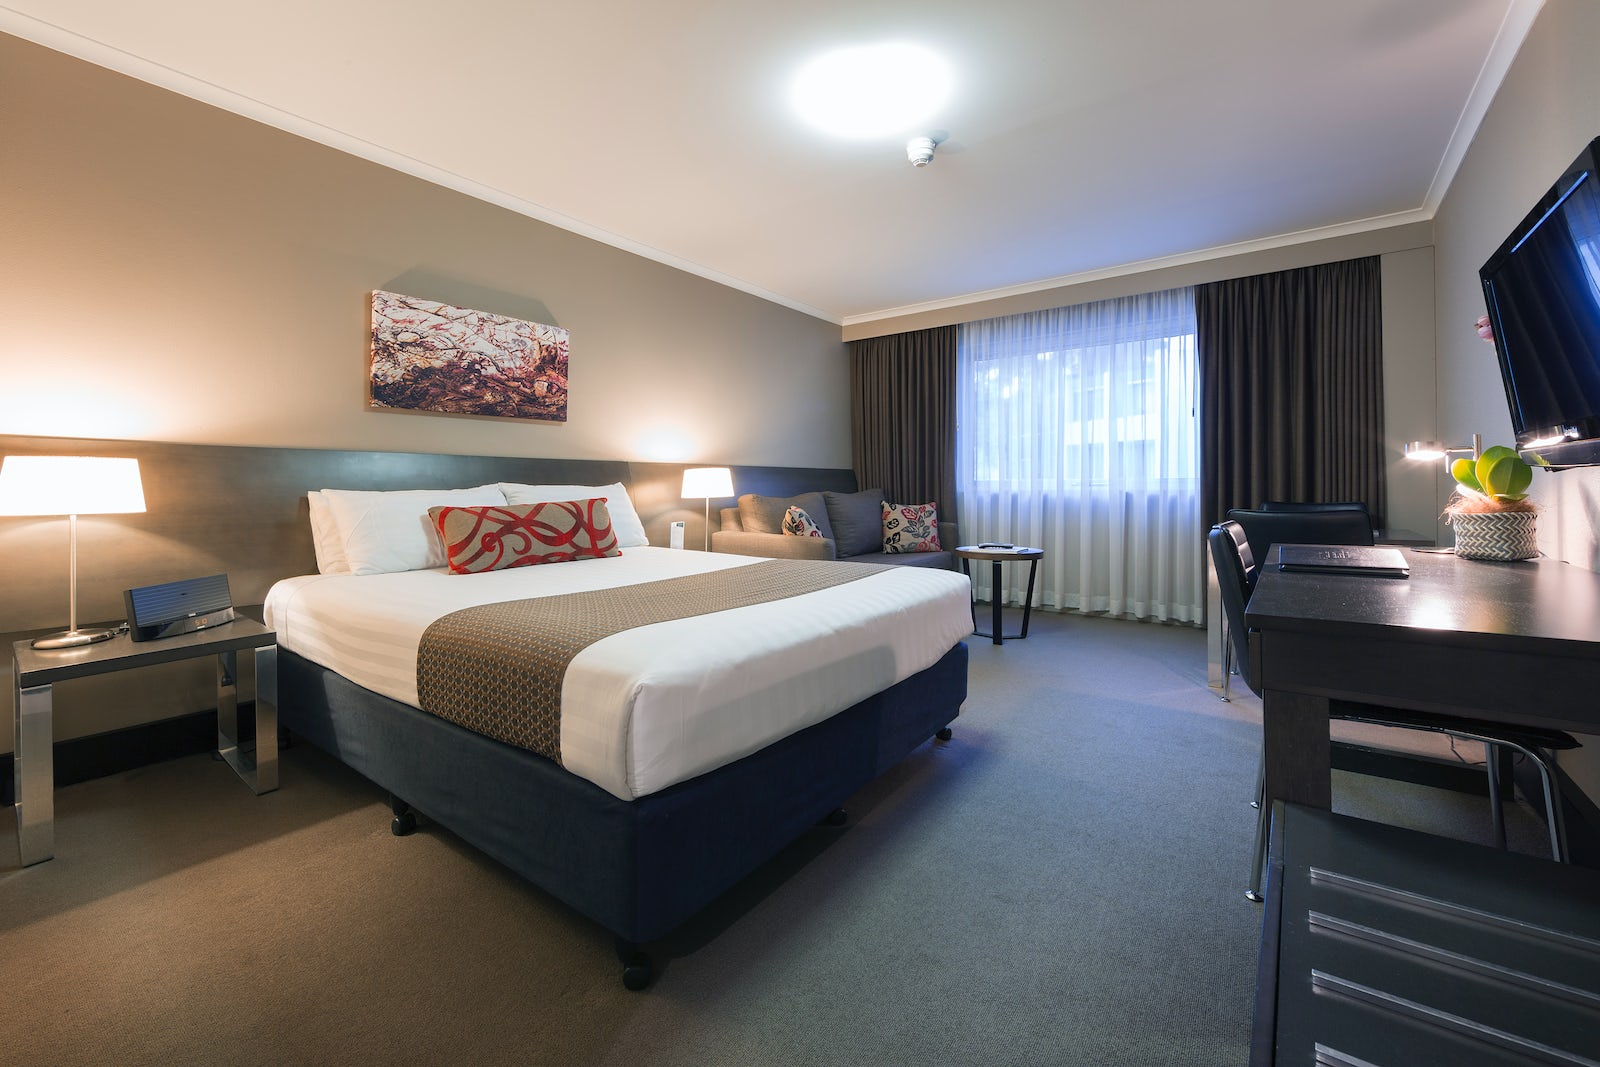 A bedroom in the hotel Pavilion on Northbourne, located in Canberra